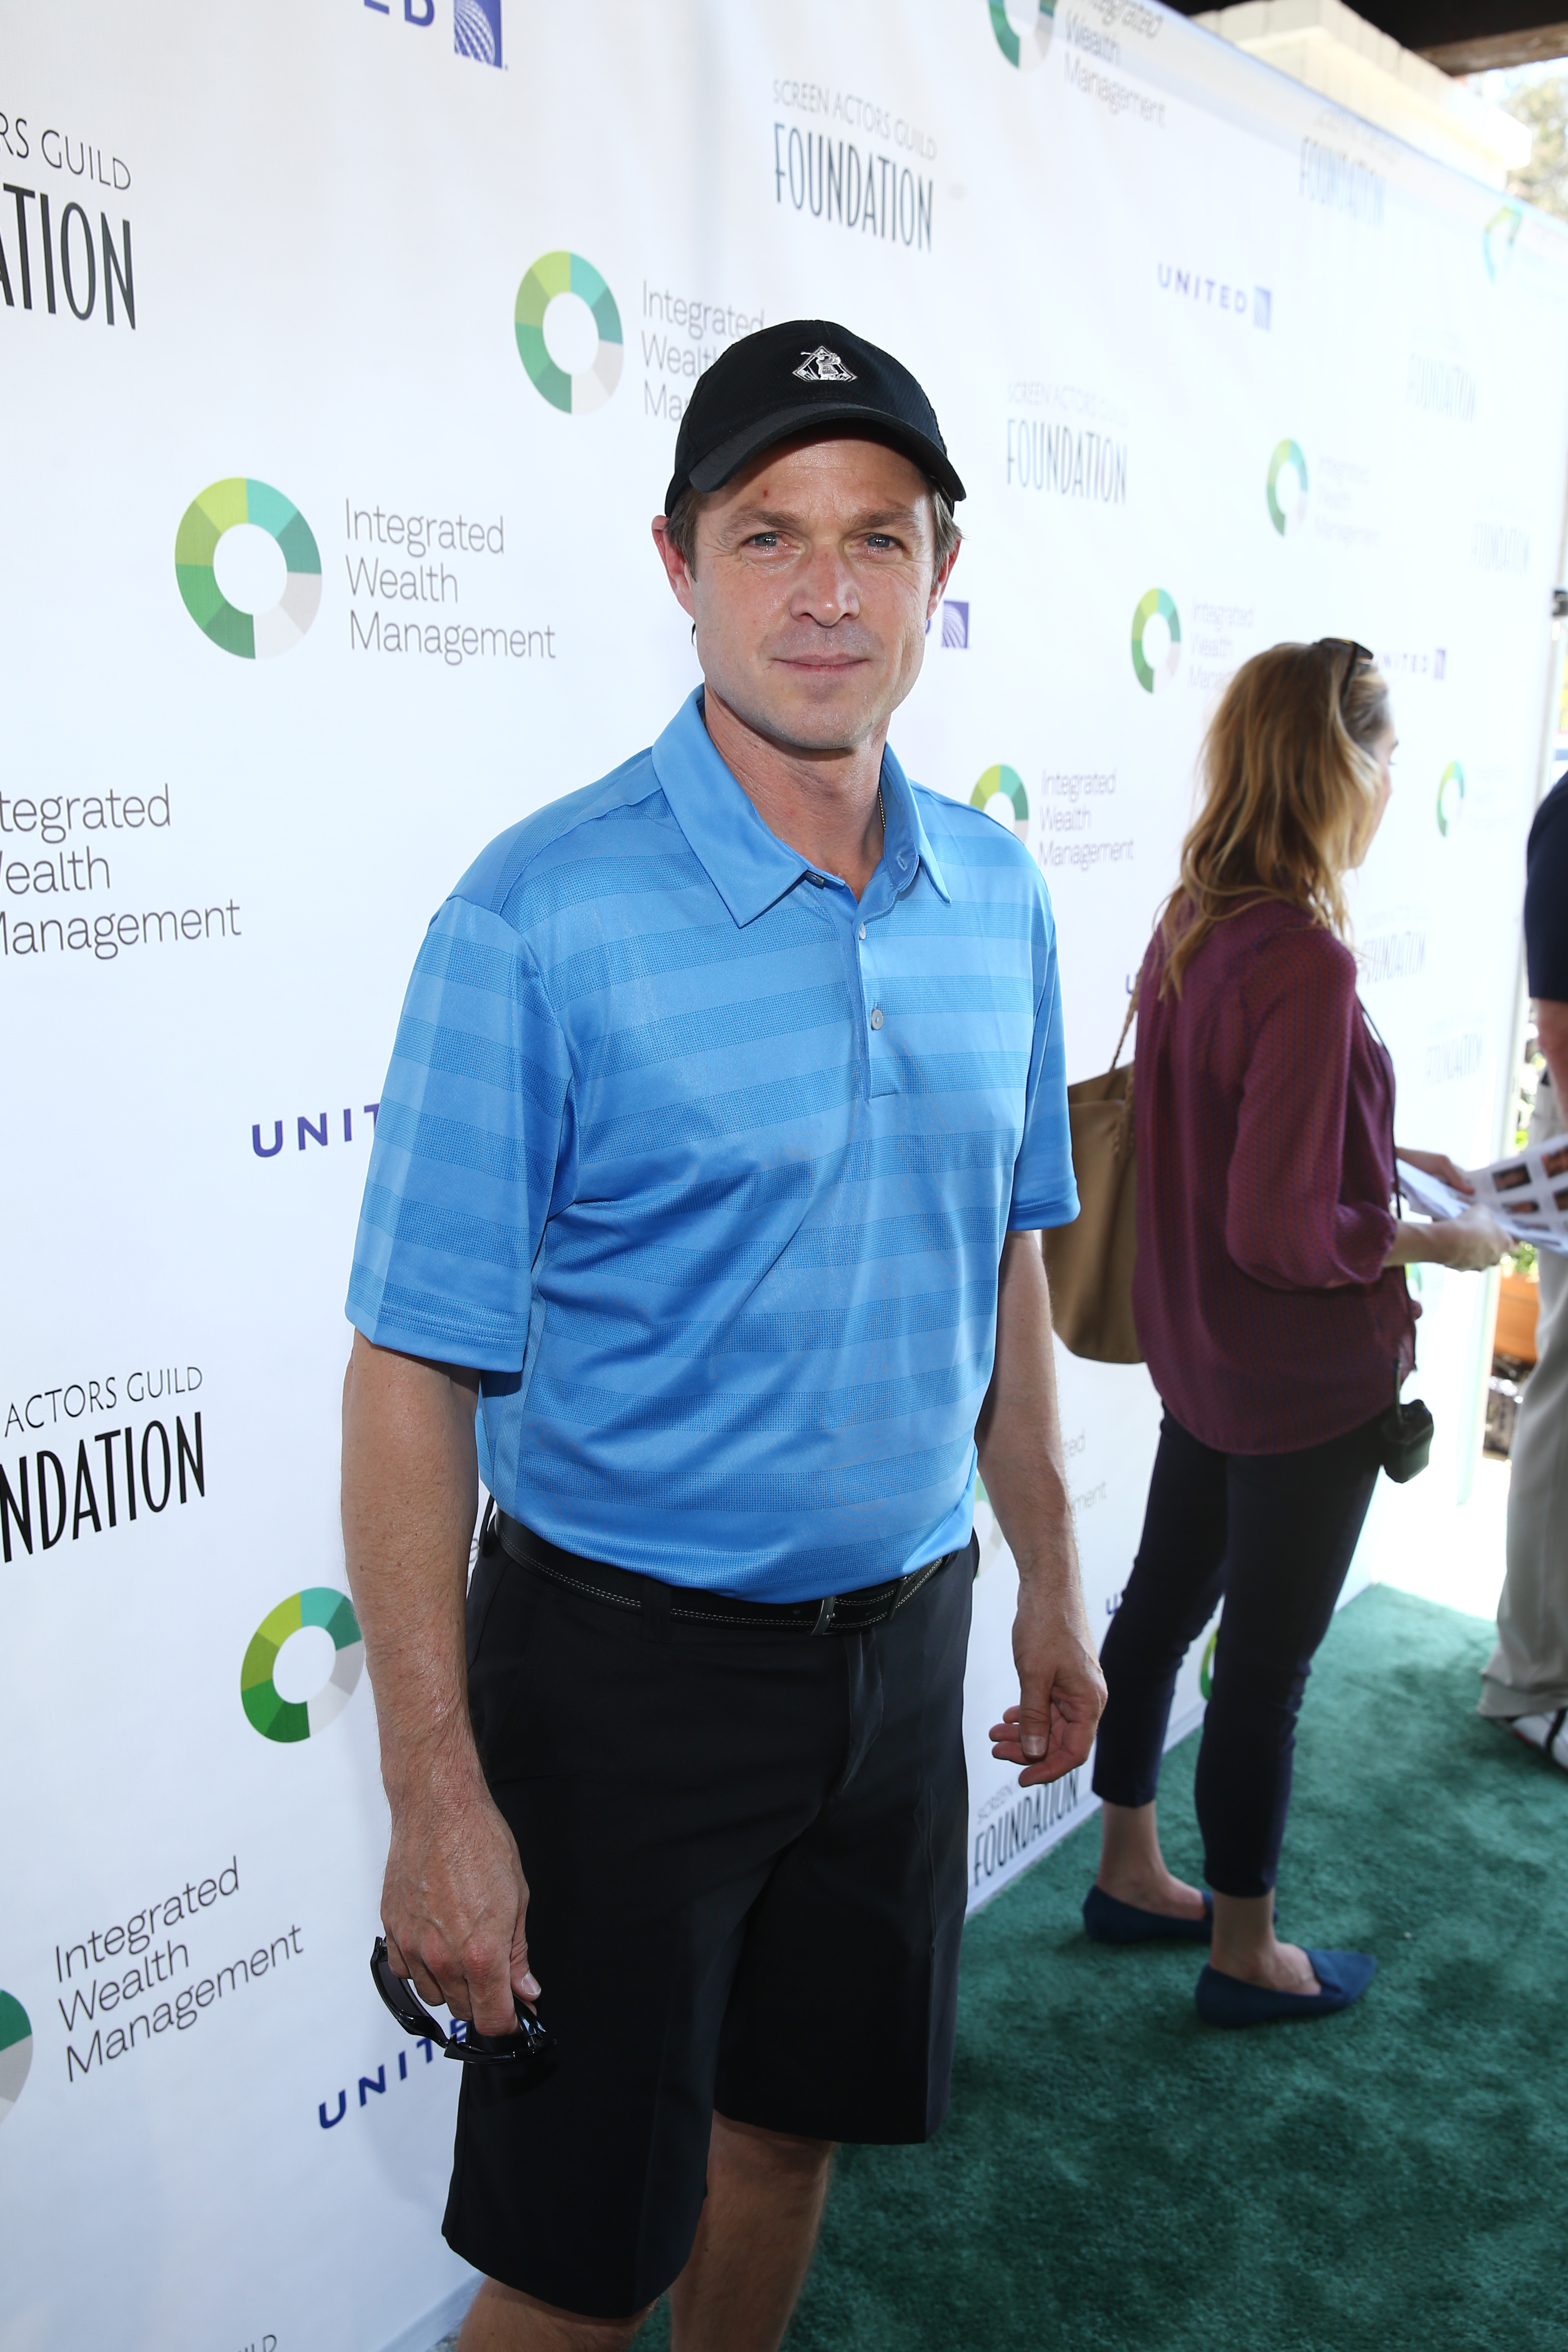 Eric Close attends The Screen Actors Guild Foundation's 6th Annual Los Angeles Golf Classic on June 8, 2015 in Burbank, California. (Photo by Mark Davis/Getty Images for The Screen Actors Guild Foundation)